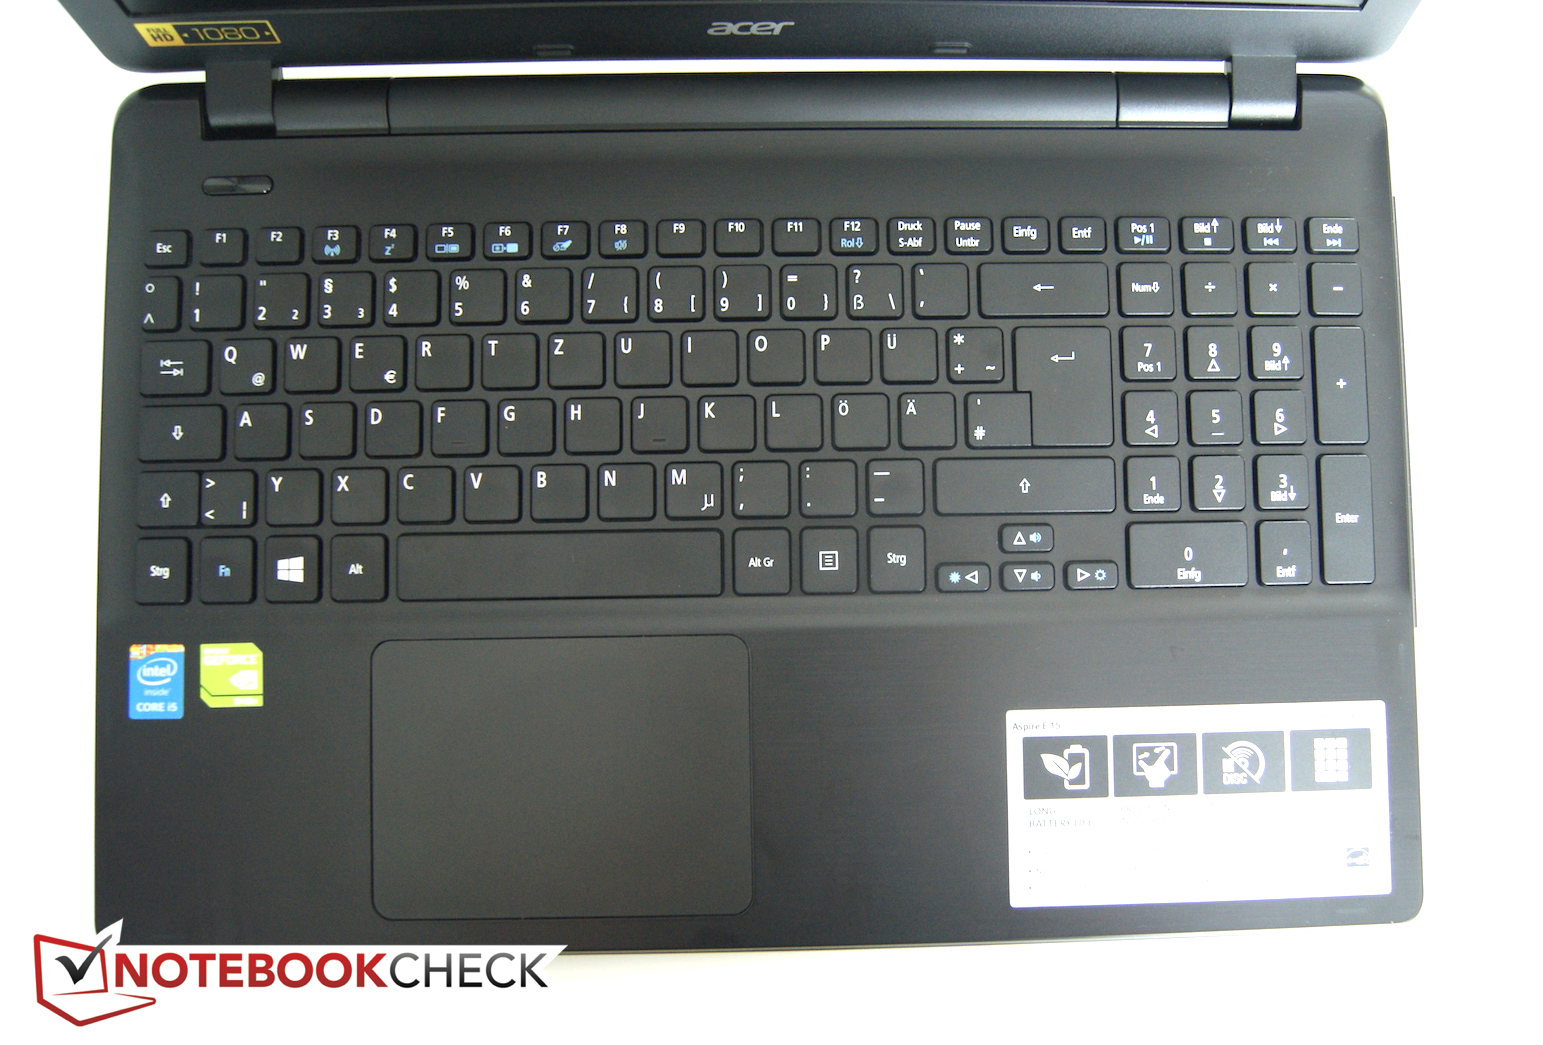 Acer Aspire E5-571G Notebook Review Update - NotebookCheck.net Reviews 107d83213b